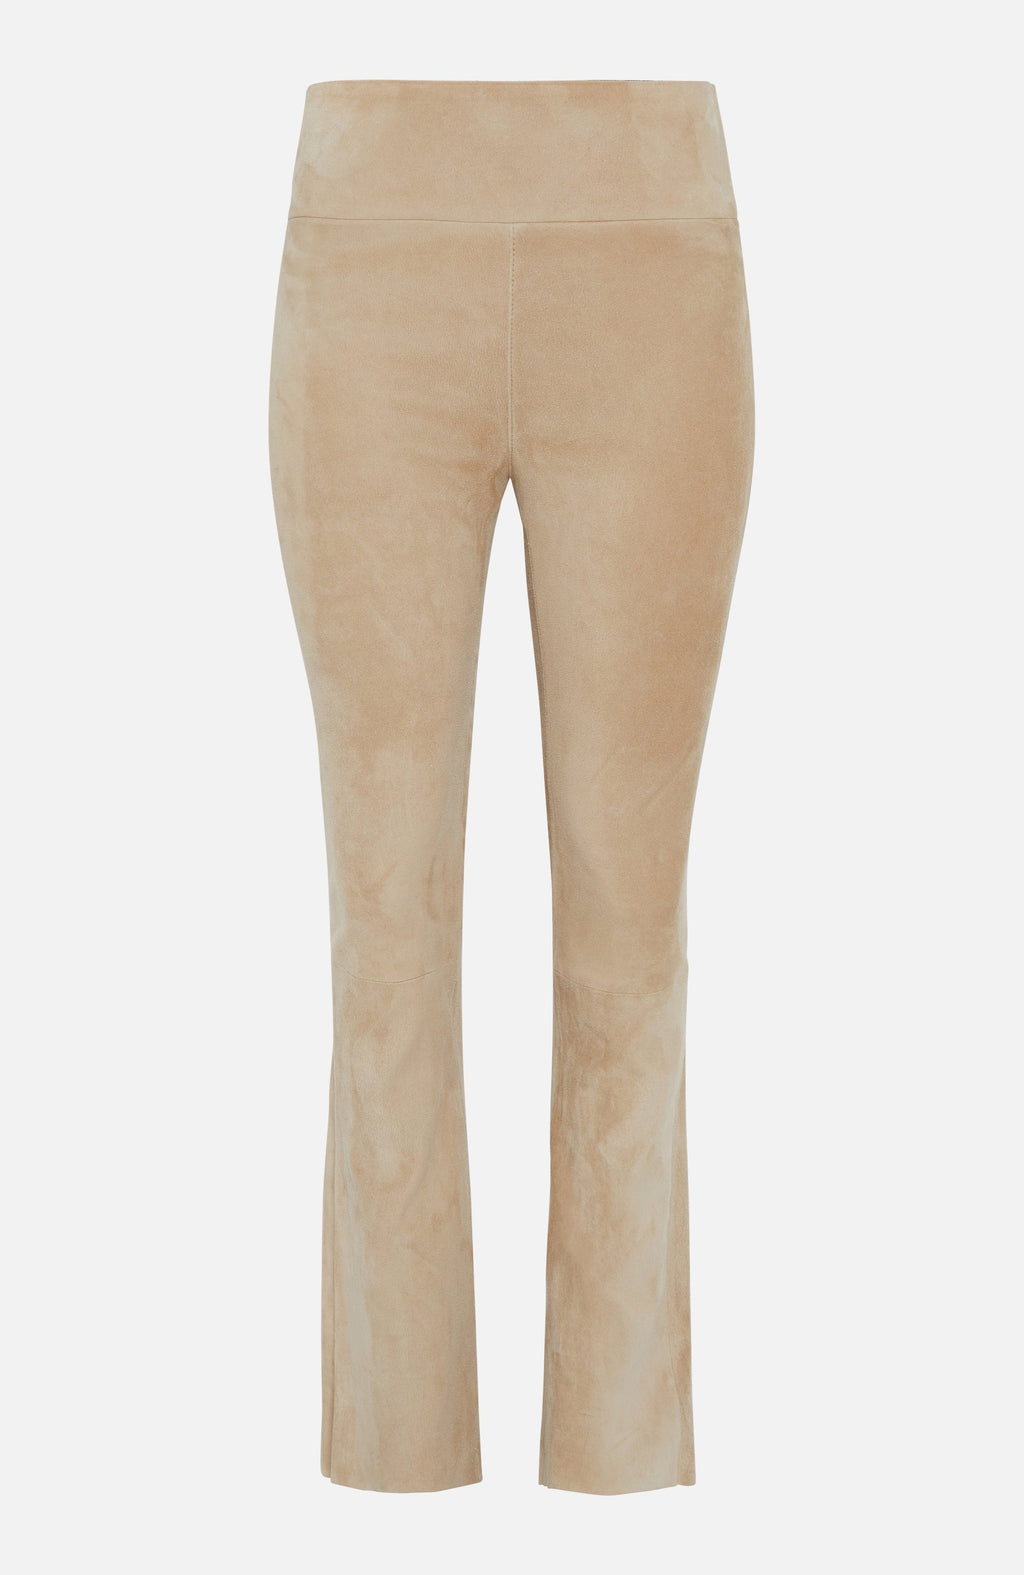 Sylvie Schimmel Ivory Suede Trousers